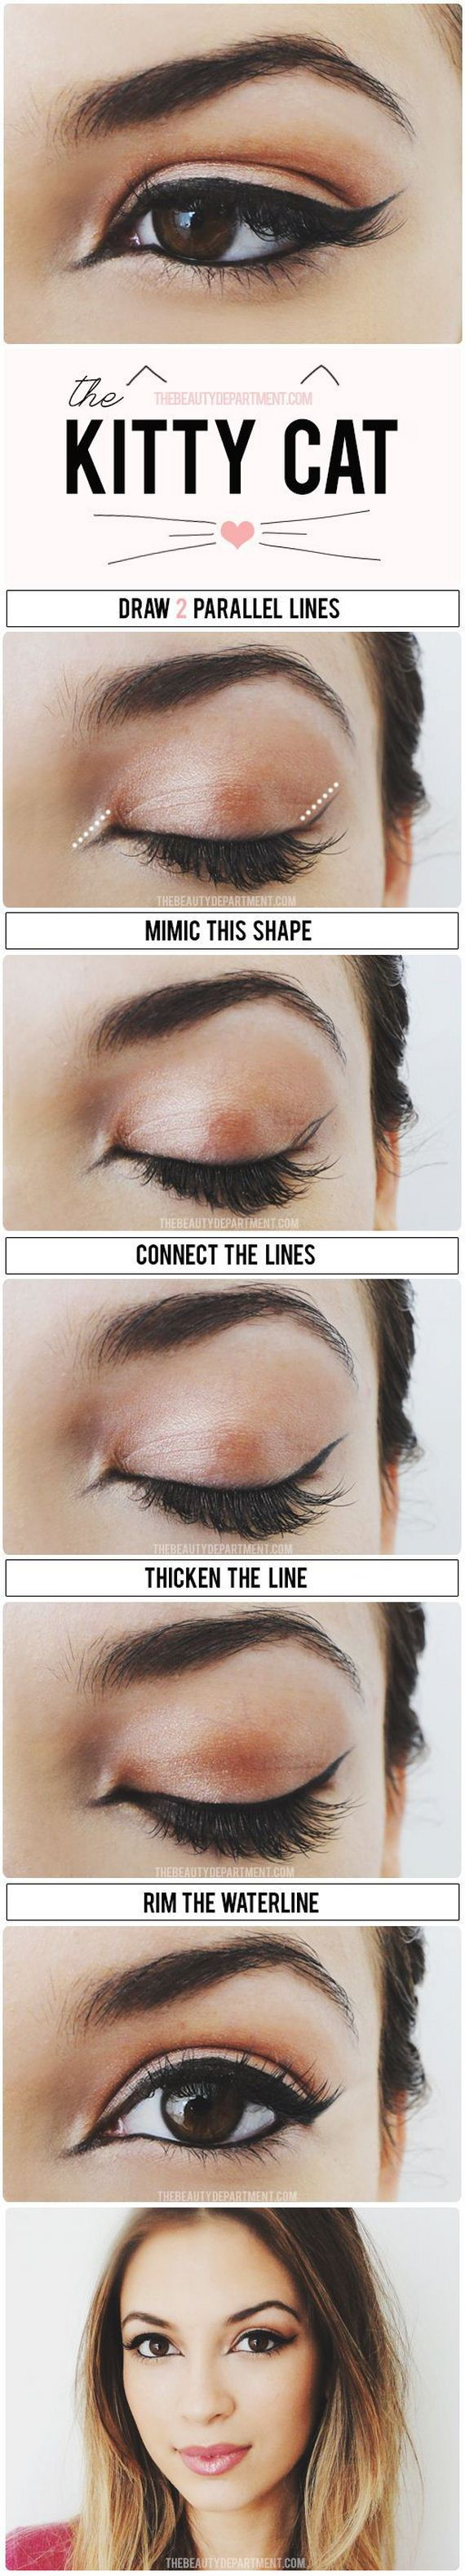 08-Fun-Eyeliner-Tutorials